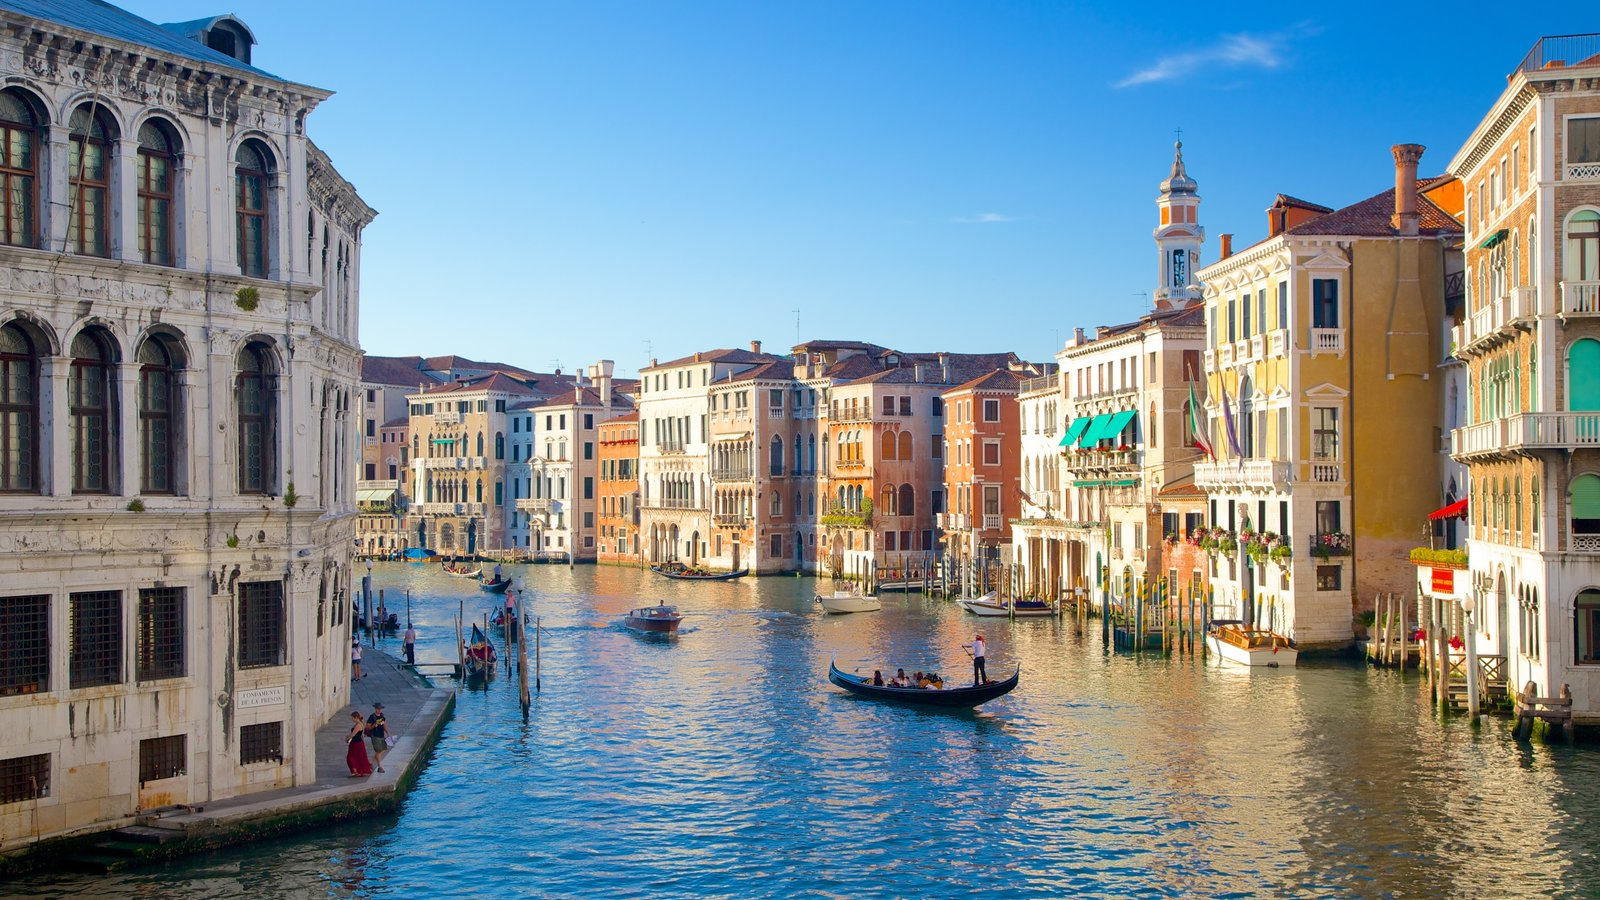 Venice showing heritage architecture and a river or creek